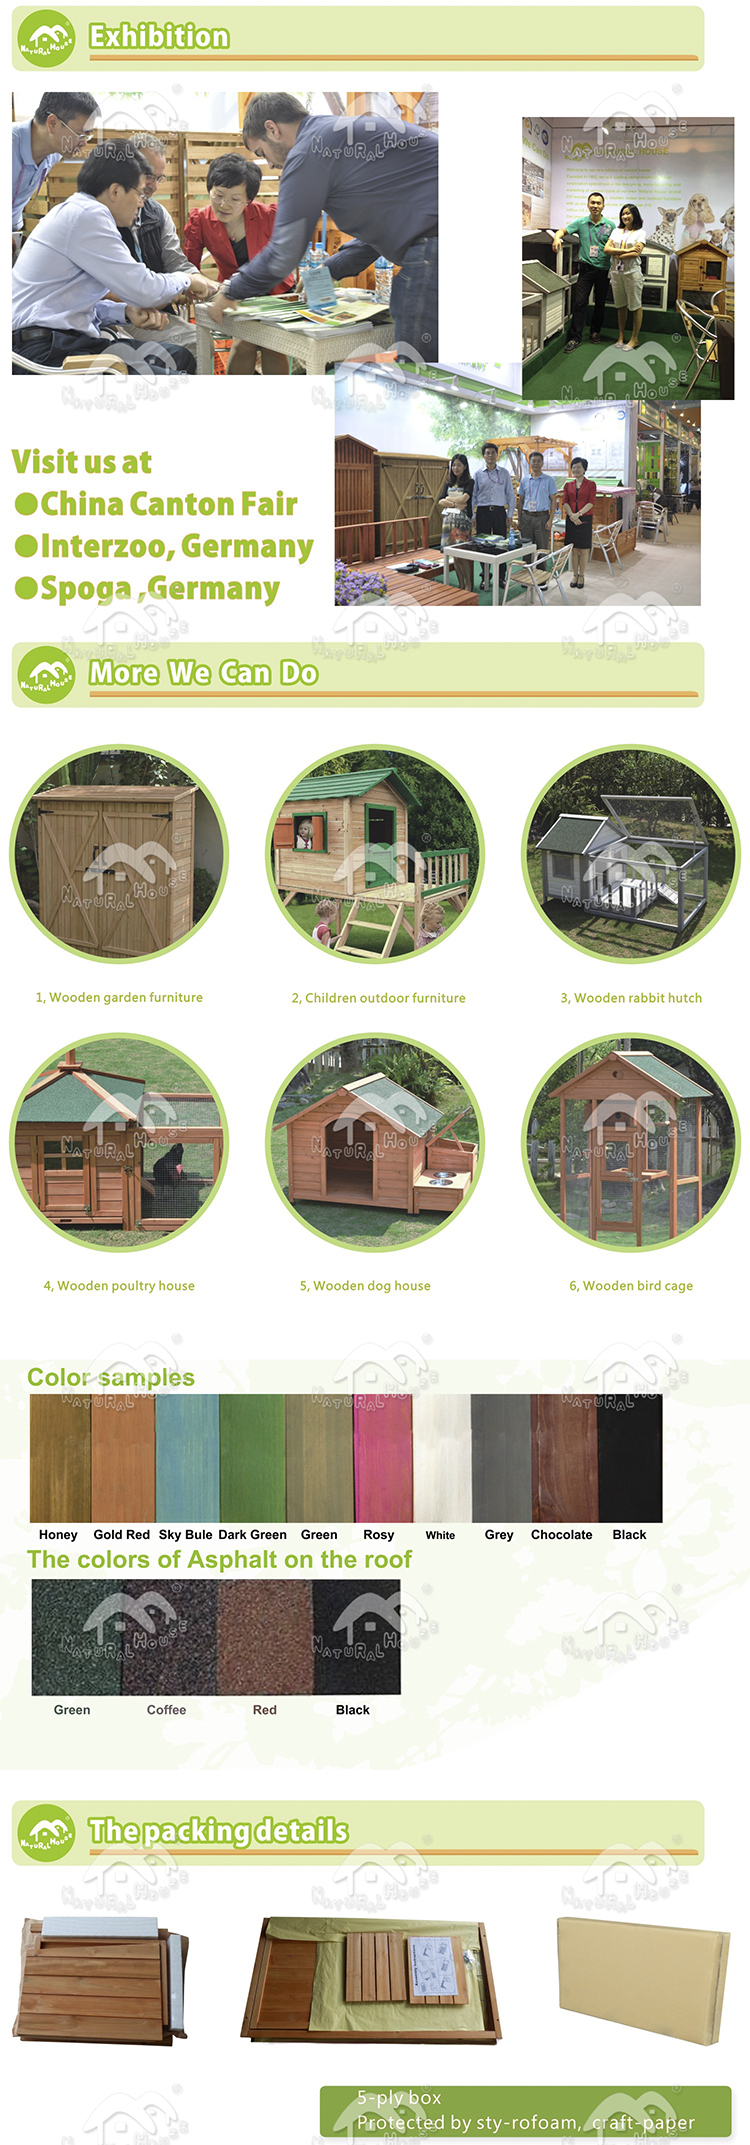 Item no.DH-3 Outdoor Wooden Dog House